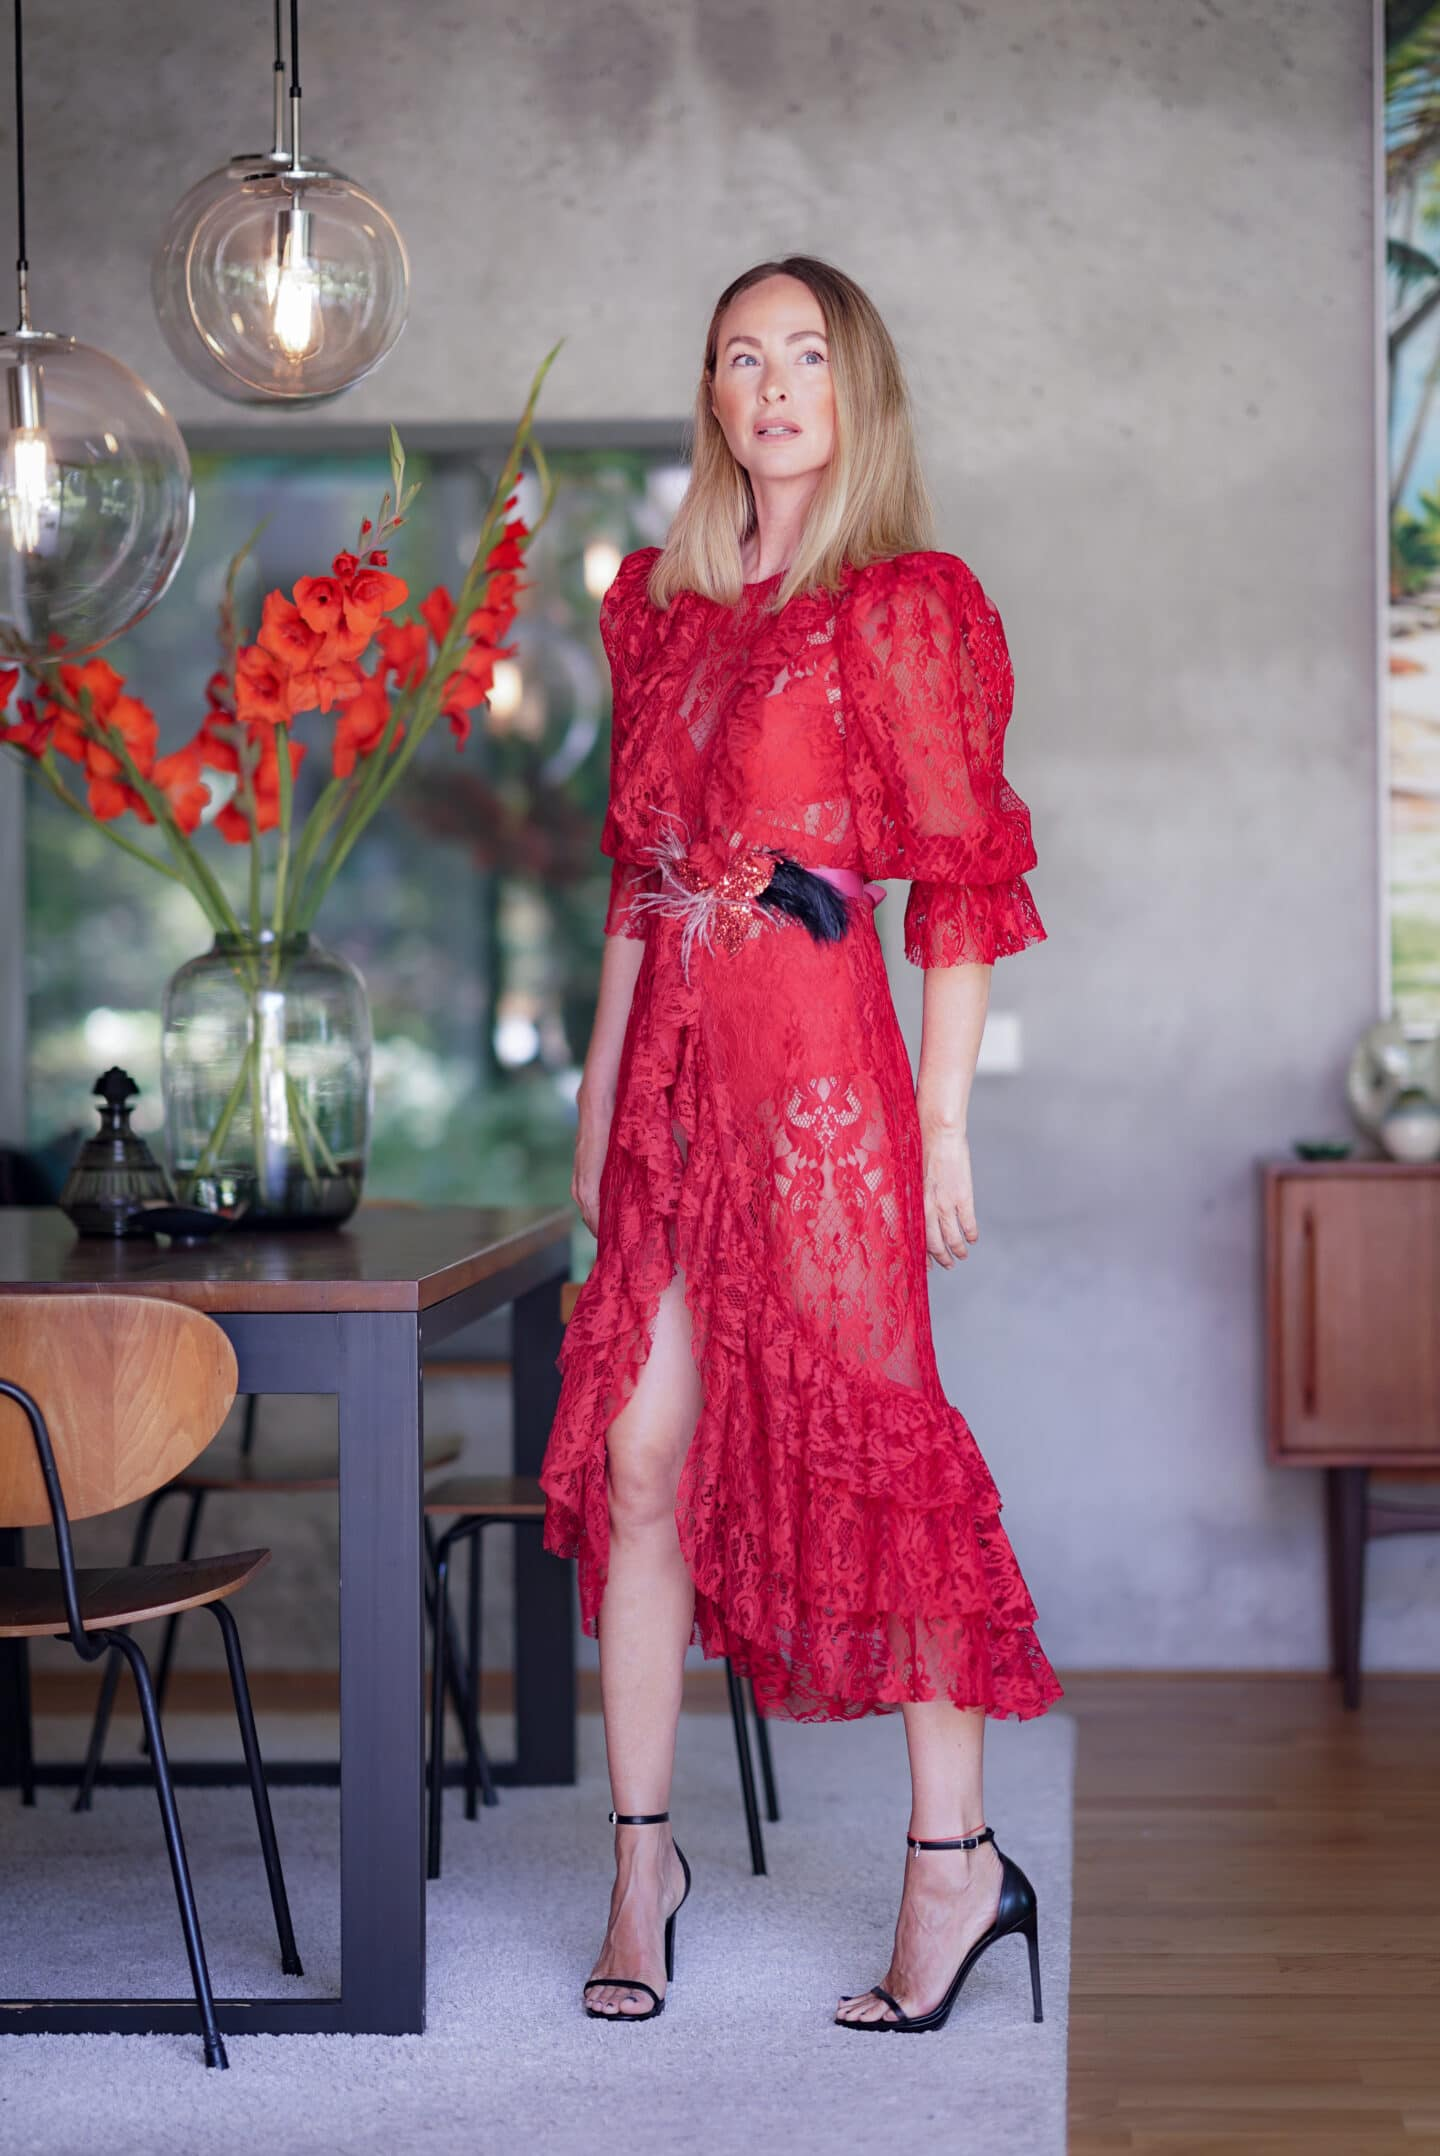 Fashion Faszination: das rote Kleid